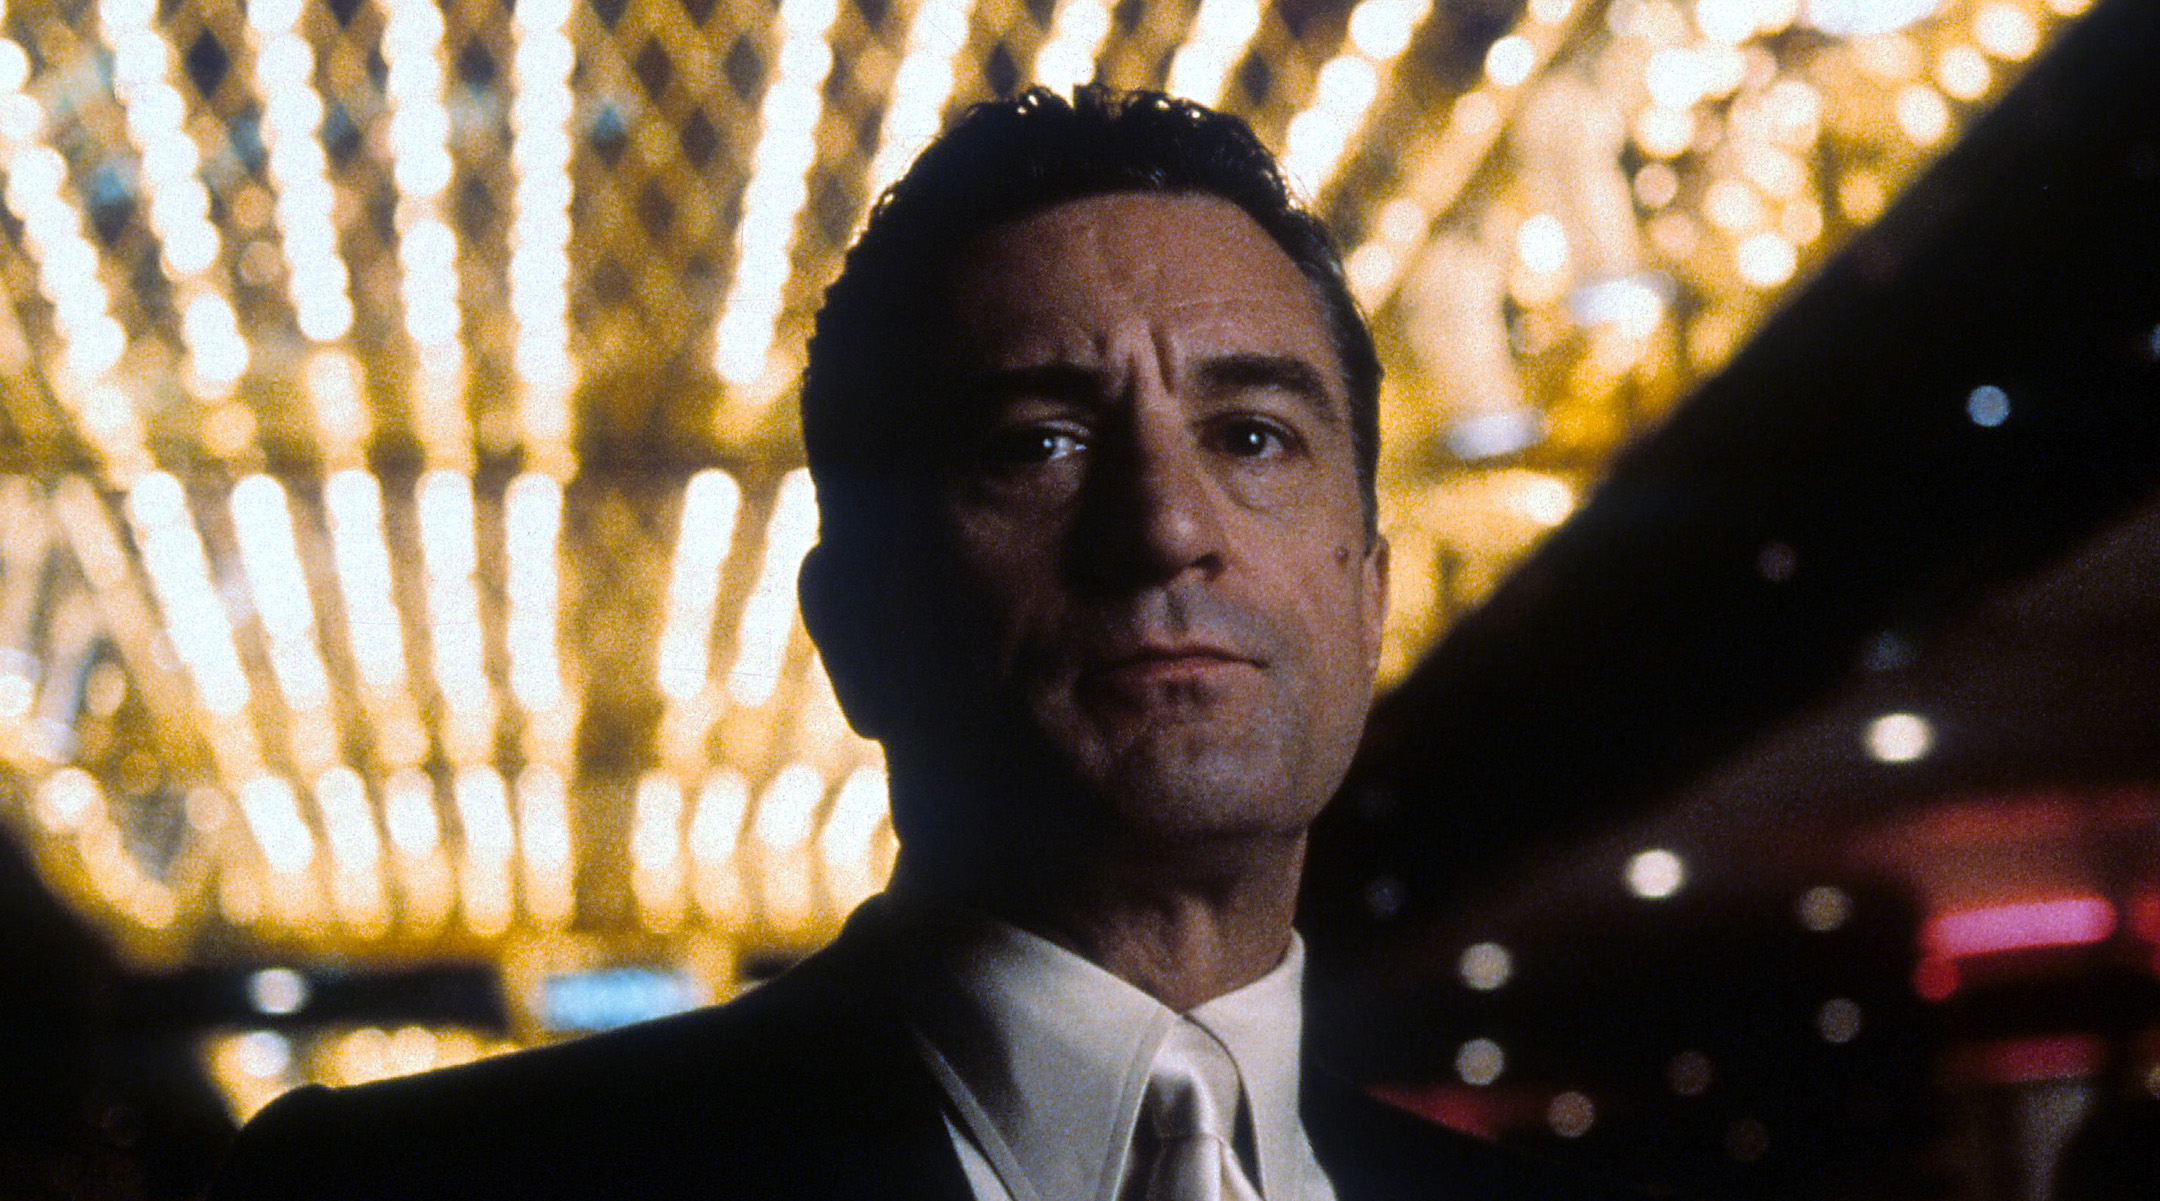 Martin Scorsese's 'Casino' is 25 years old. Here's a primer on its Jewish protagonist and...